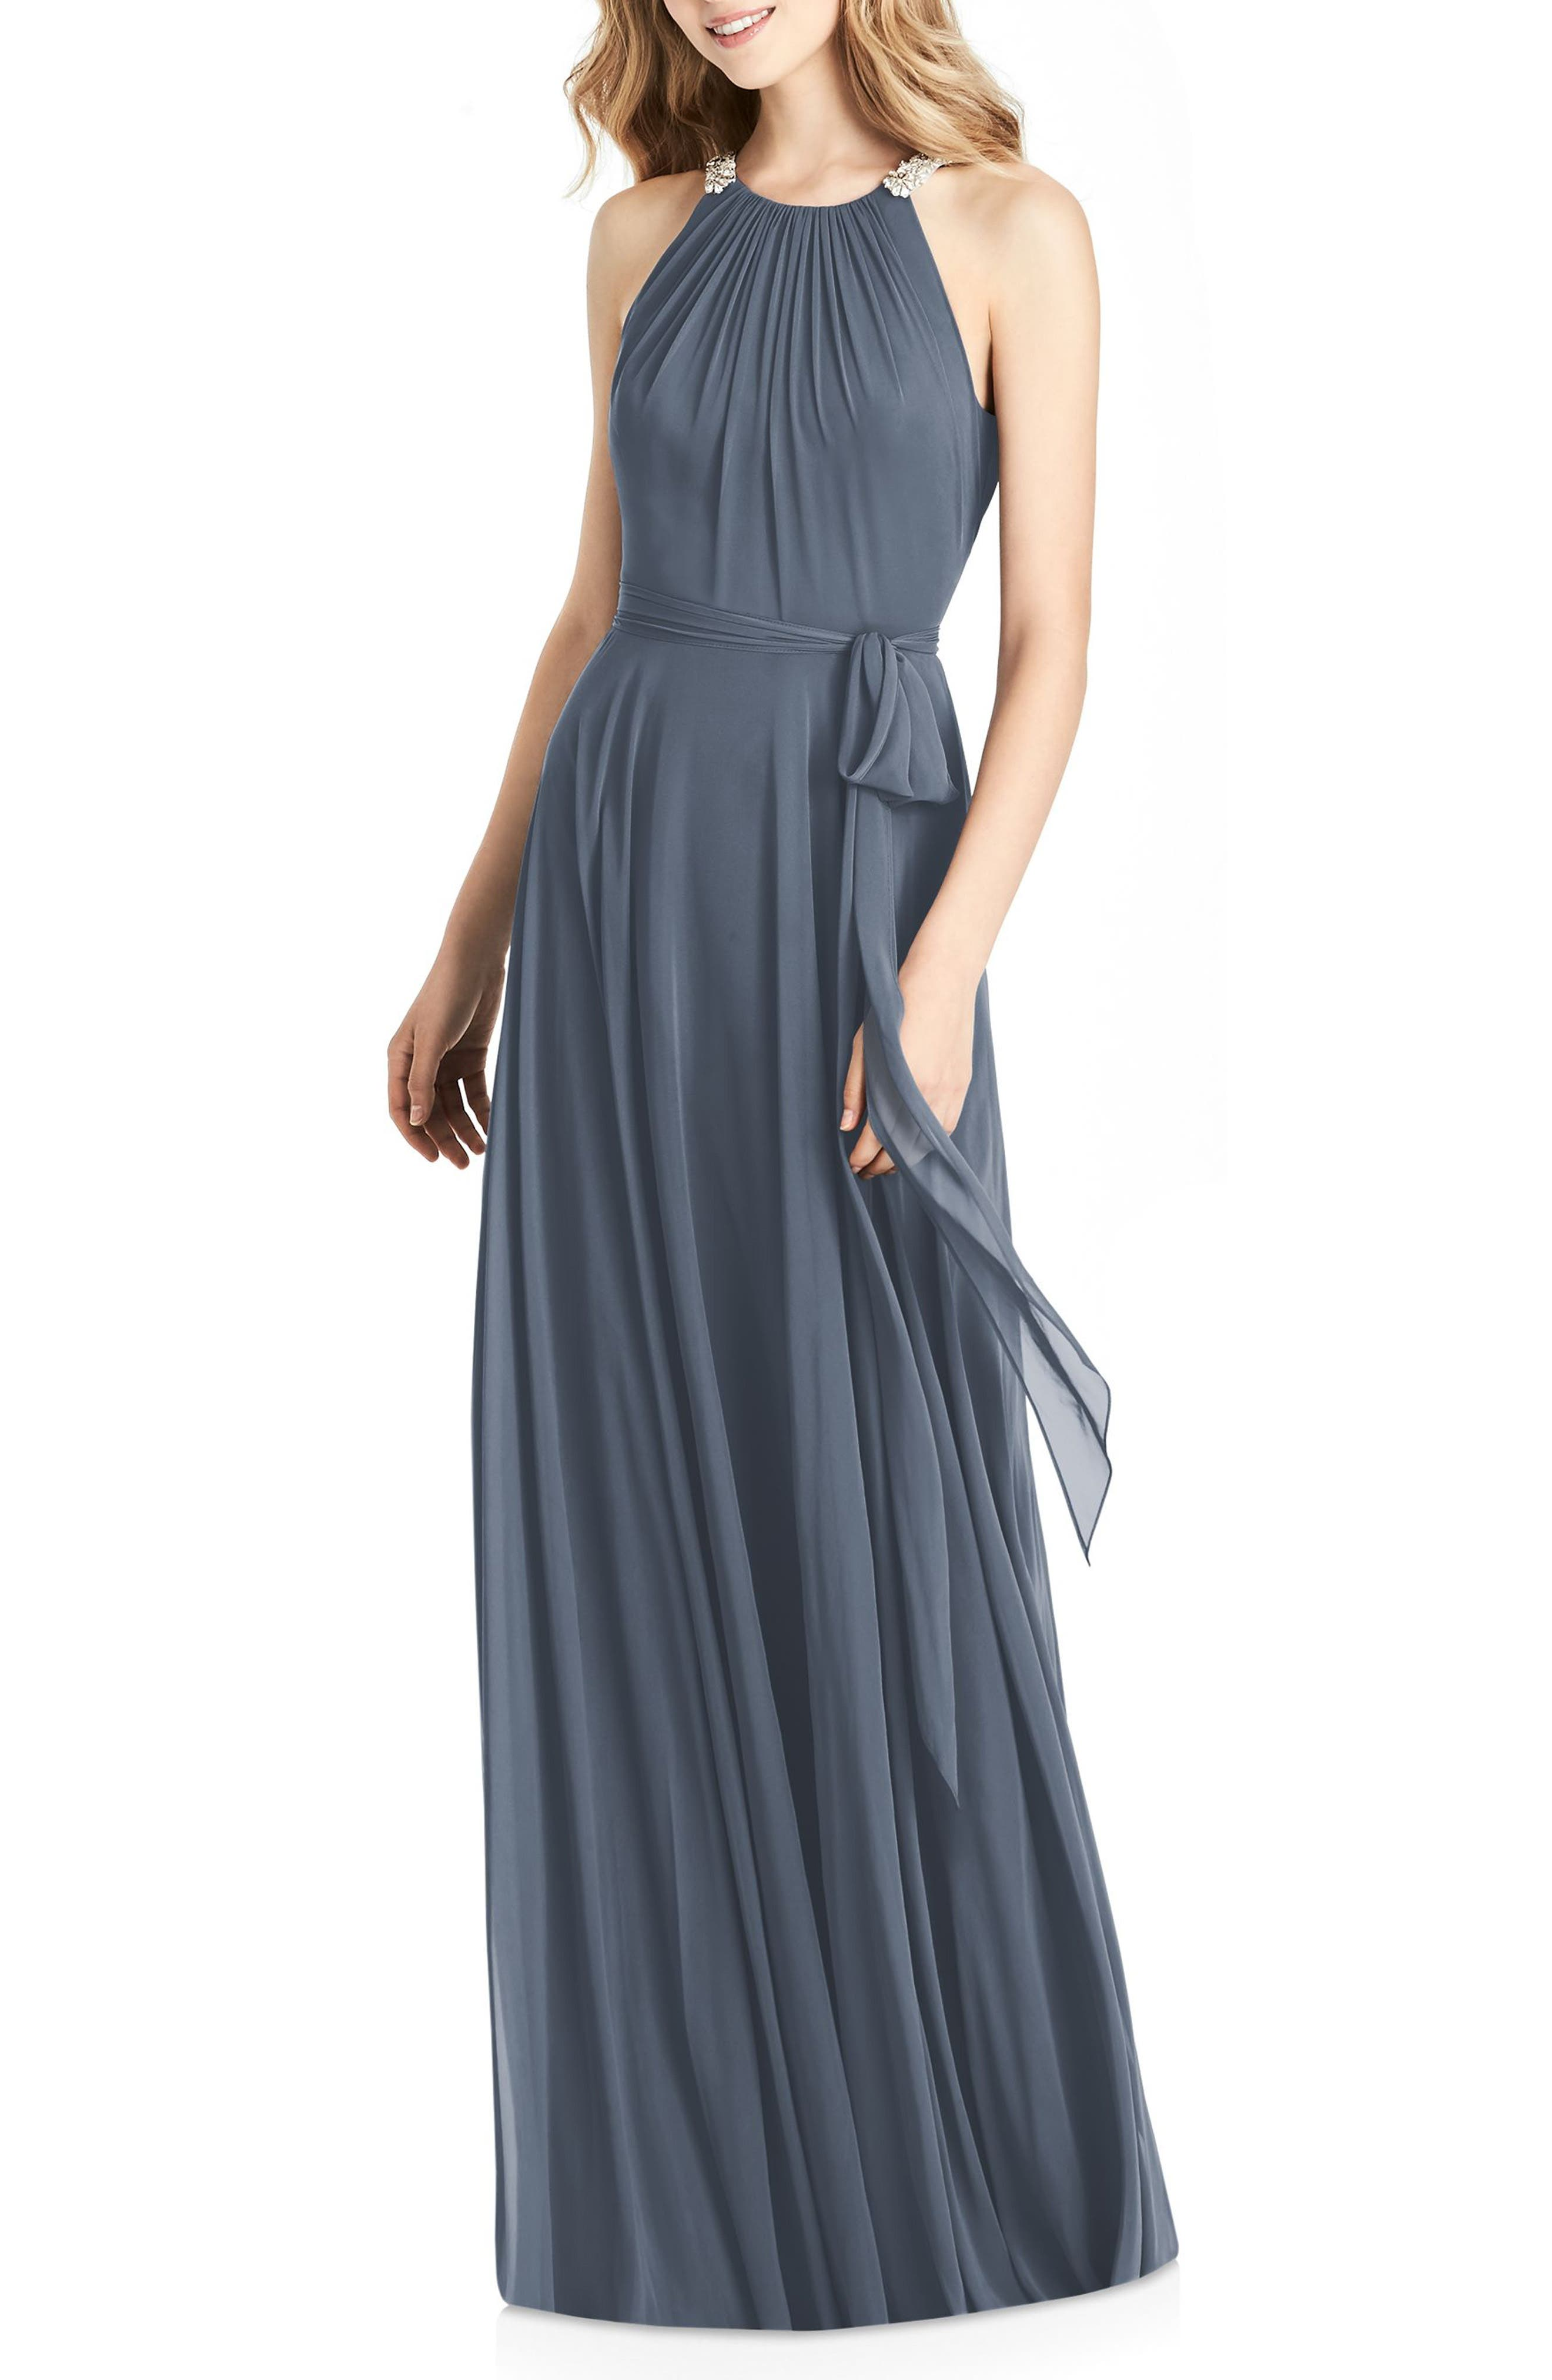 Beaded Strap Chiffon Gown,                             Main thumbnail 1, color,                             Silverstone